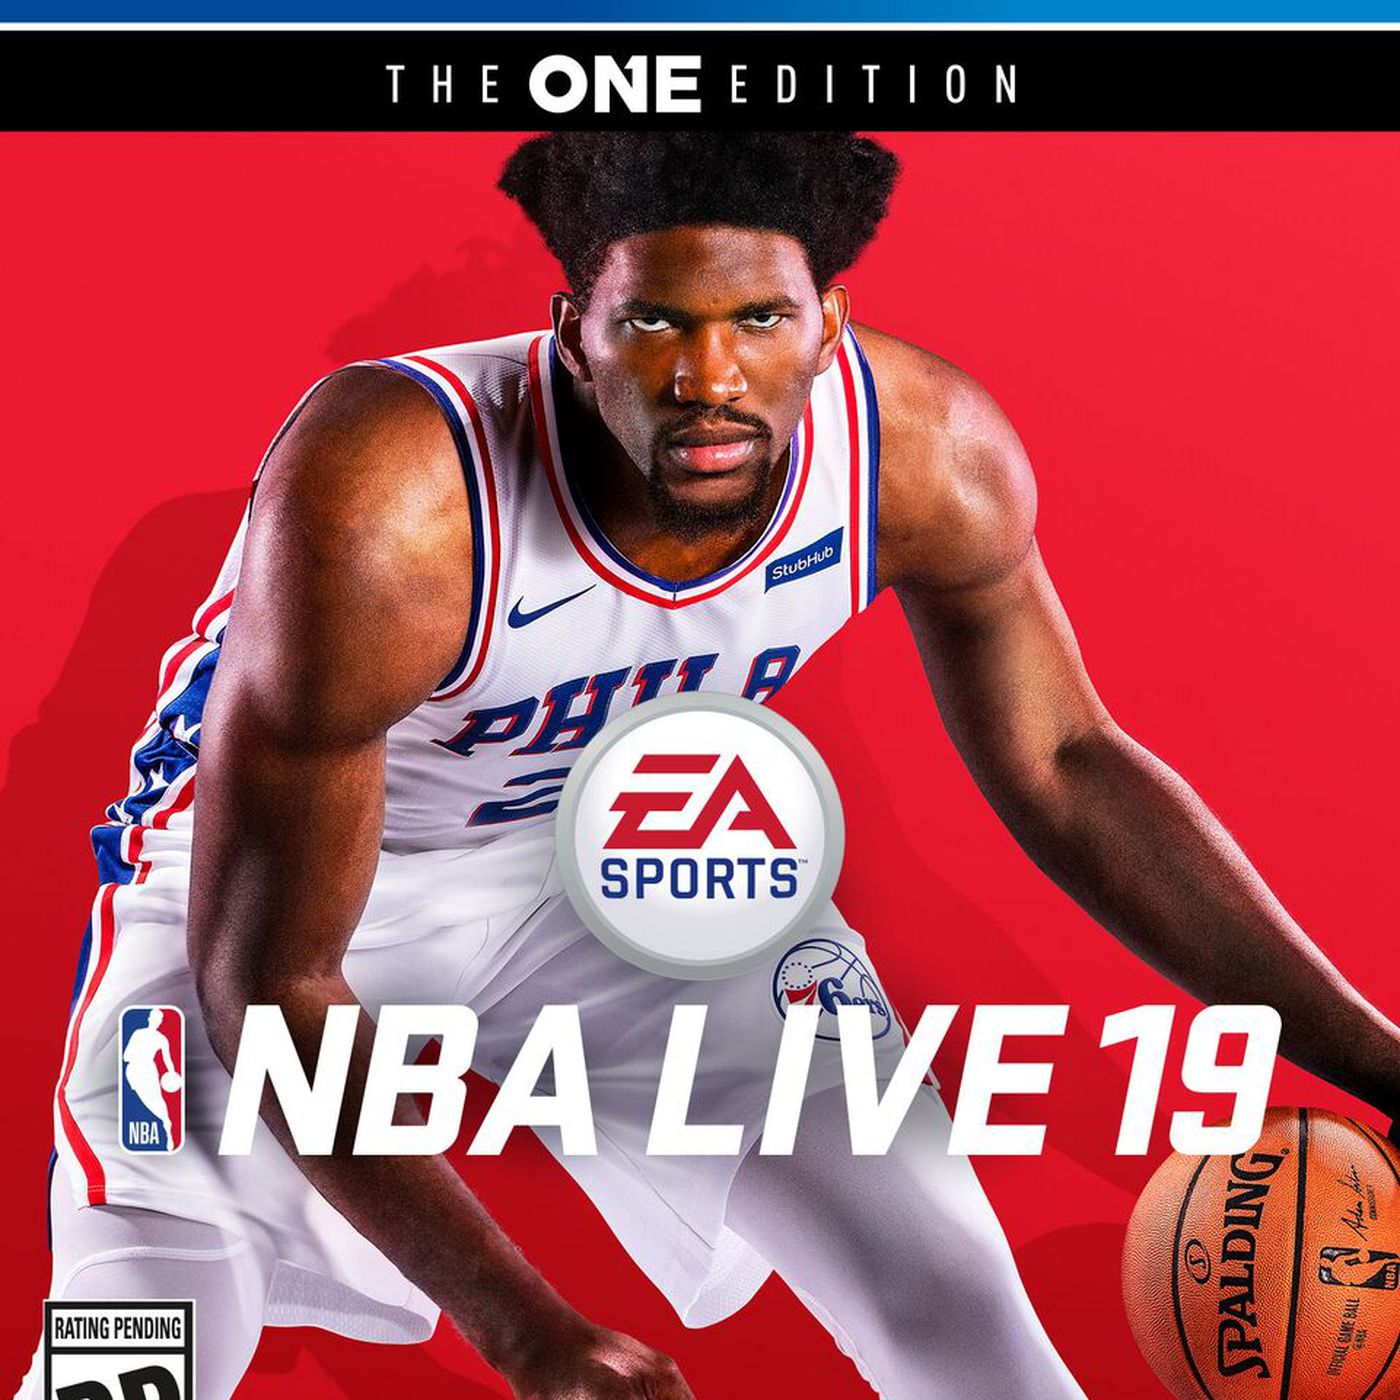 Joel Embiid Trusted The Process Onto The Nba Live 19 Cover